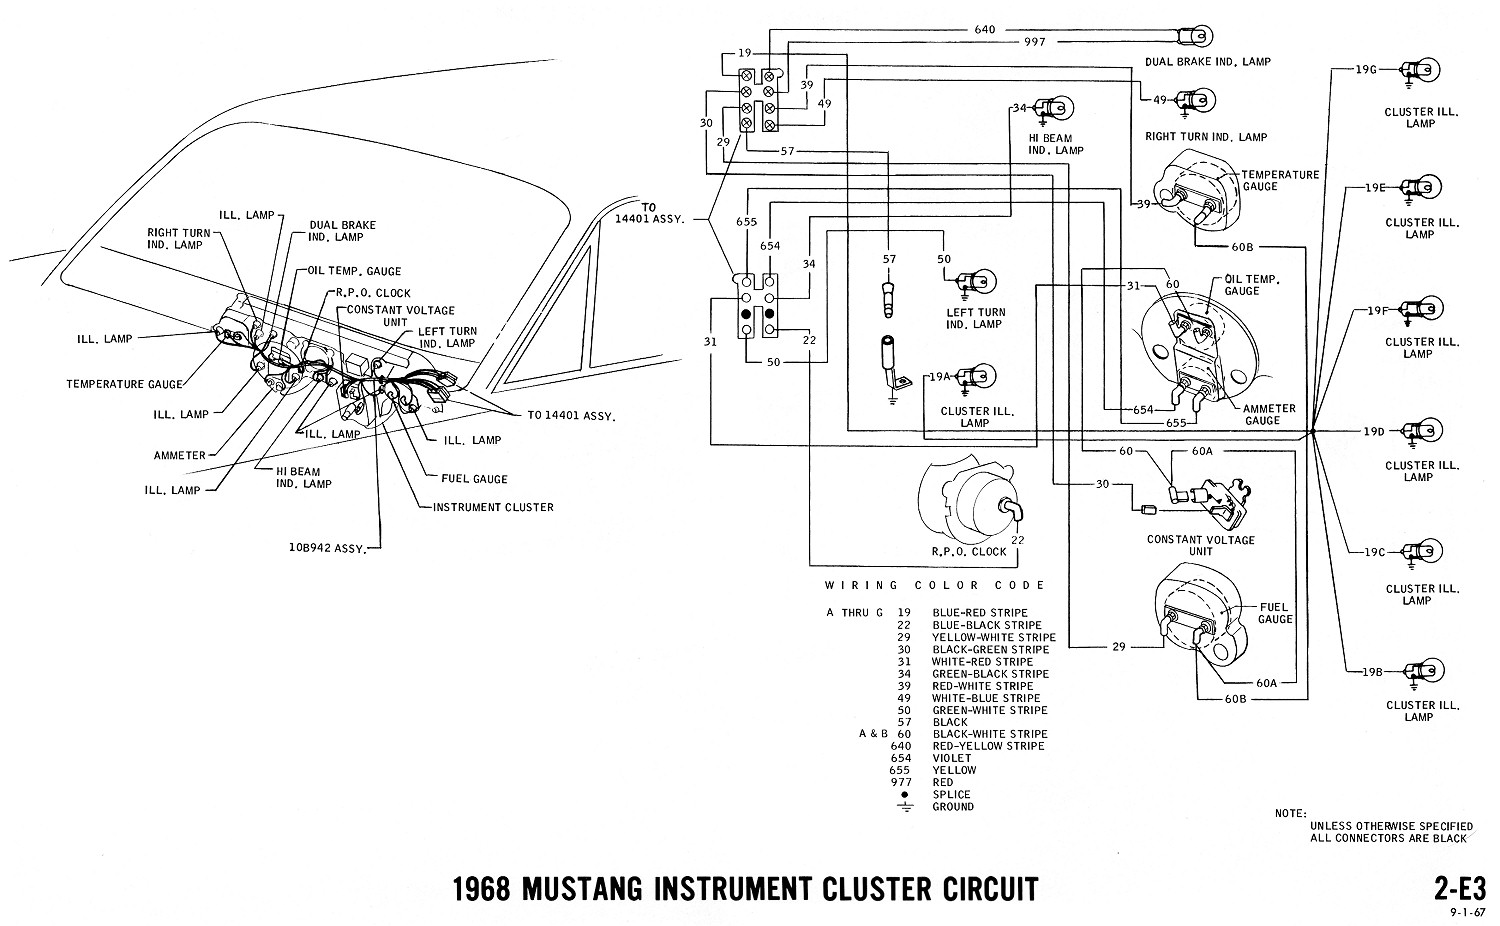 Aro Wiring Diagram Schema Diagrams Vacuum Switch Symbol Free Download Schematic 68 Mustang Master Easy Home 1968 Evolving